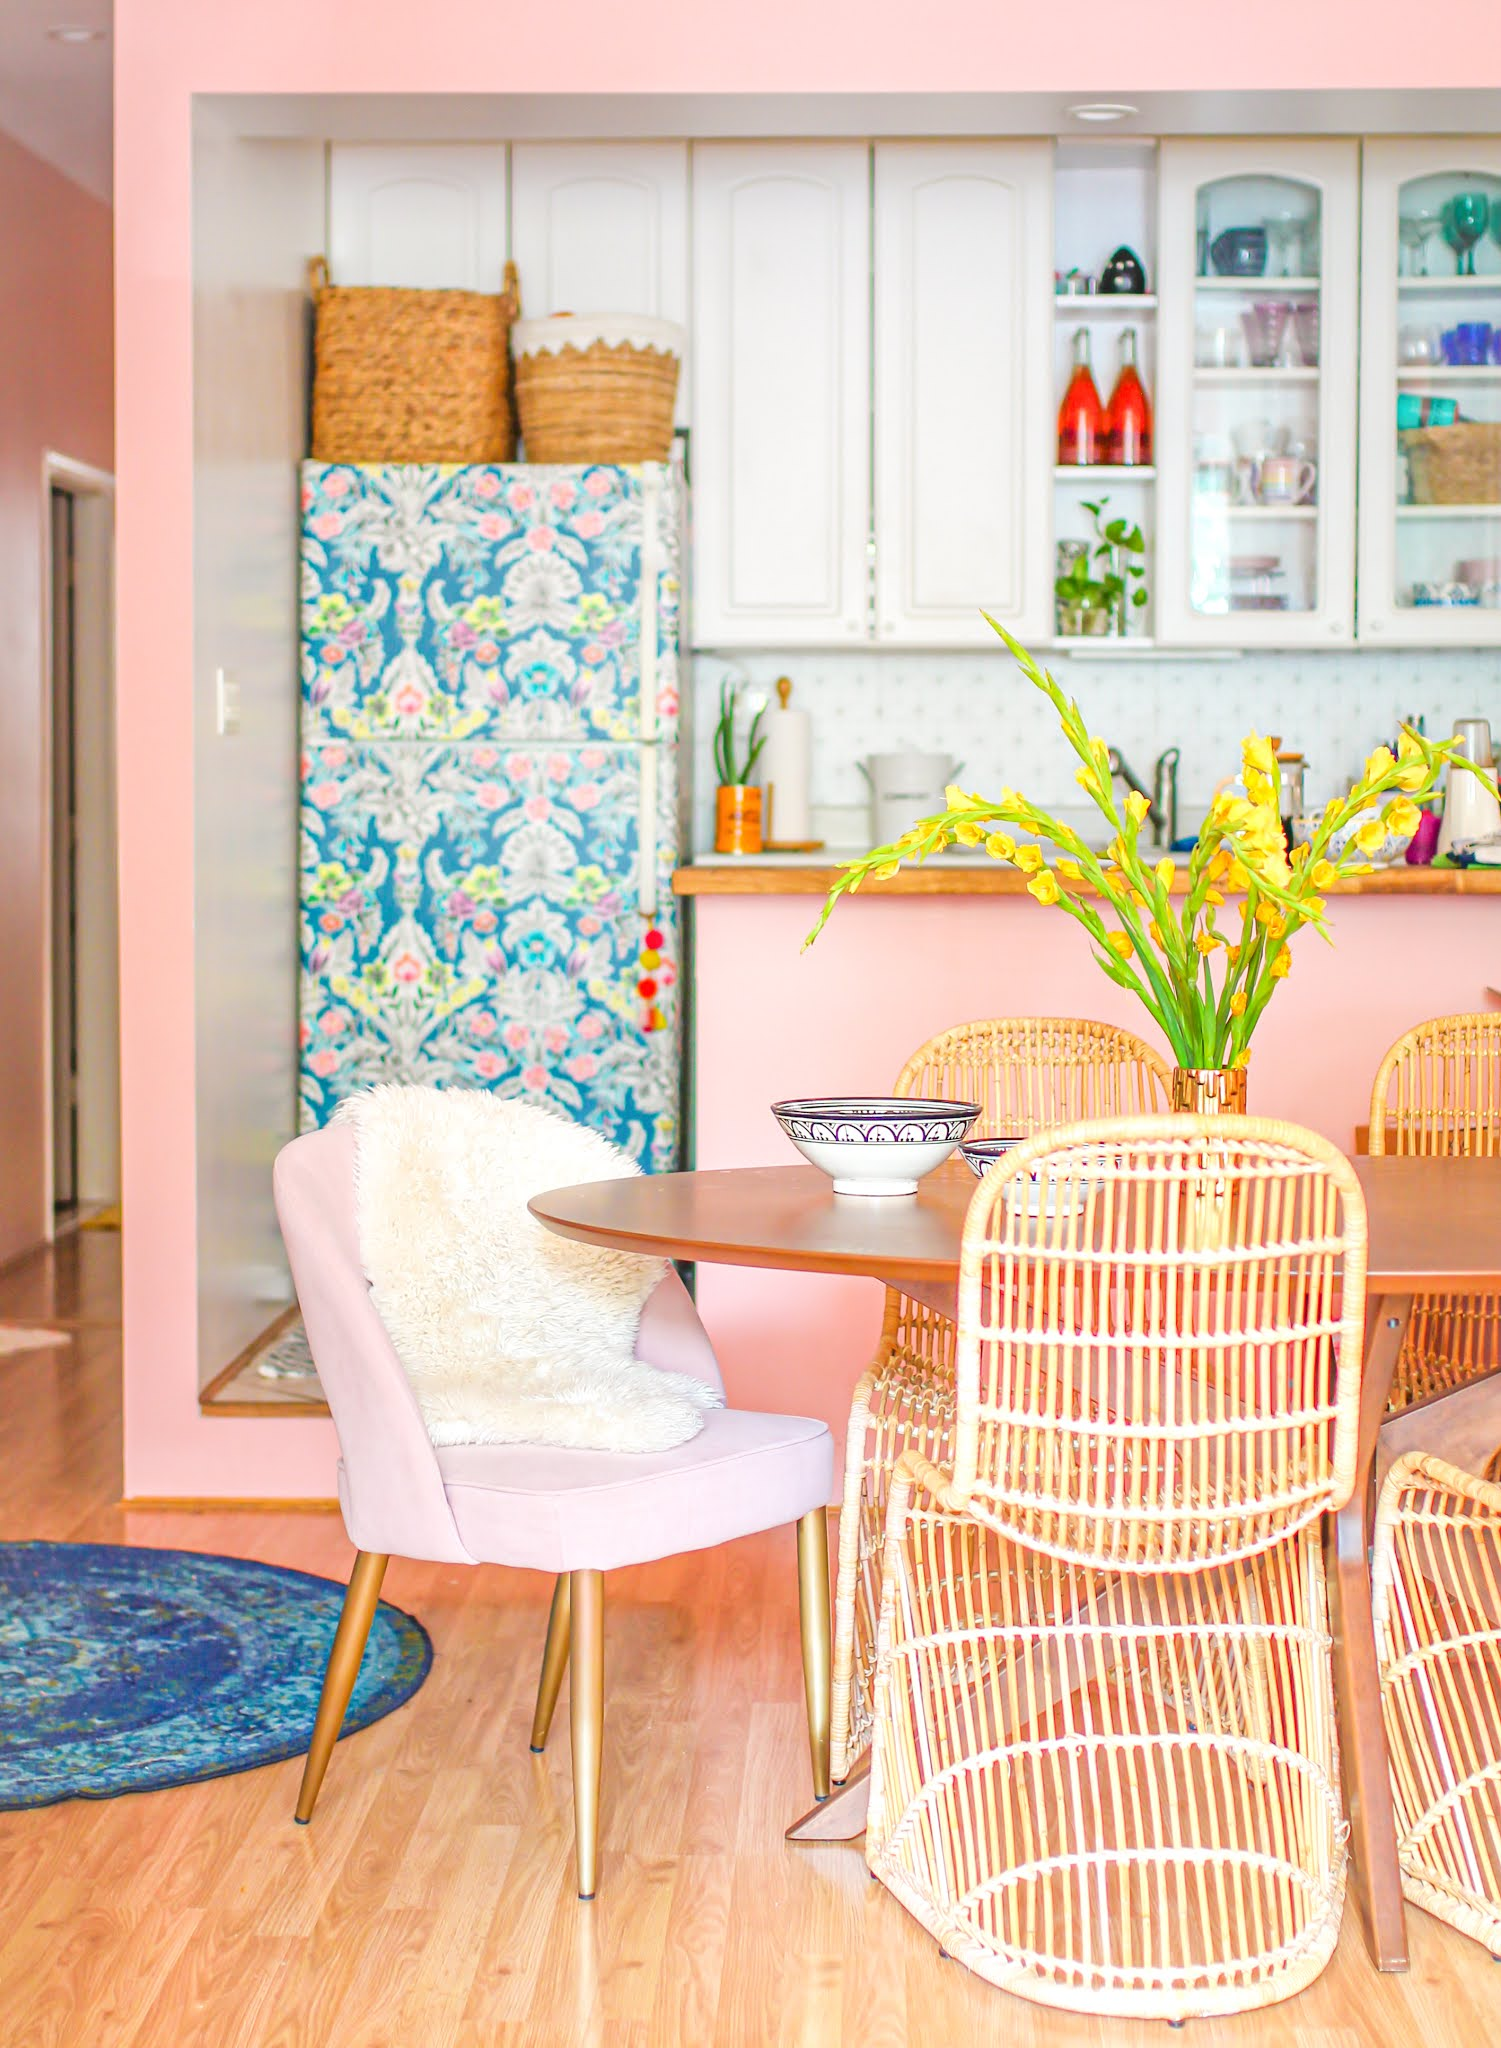 removable wallpaper fridge // wallpaper fridge // fridge hacks // kitchen hacks // kitchen wallpaper // colorful wallpaper // pink and white kitchen // boho kitchens // colorful kitchen // small colorful homes